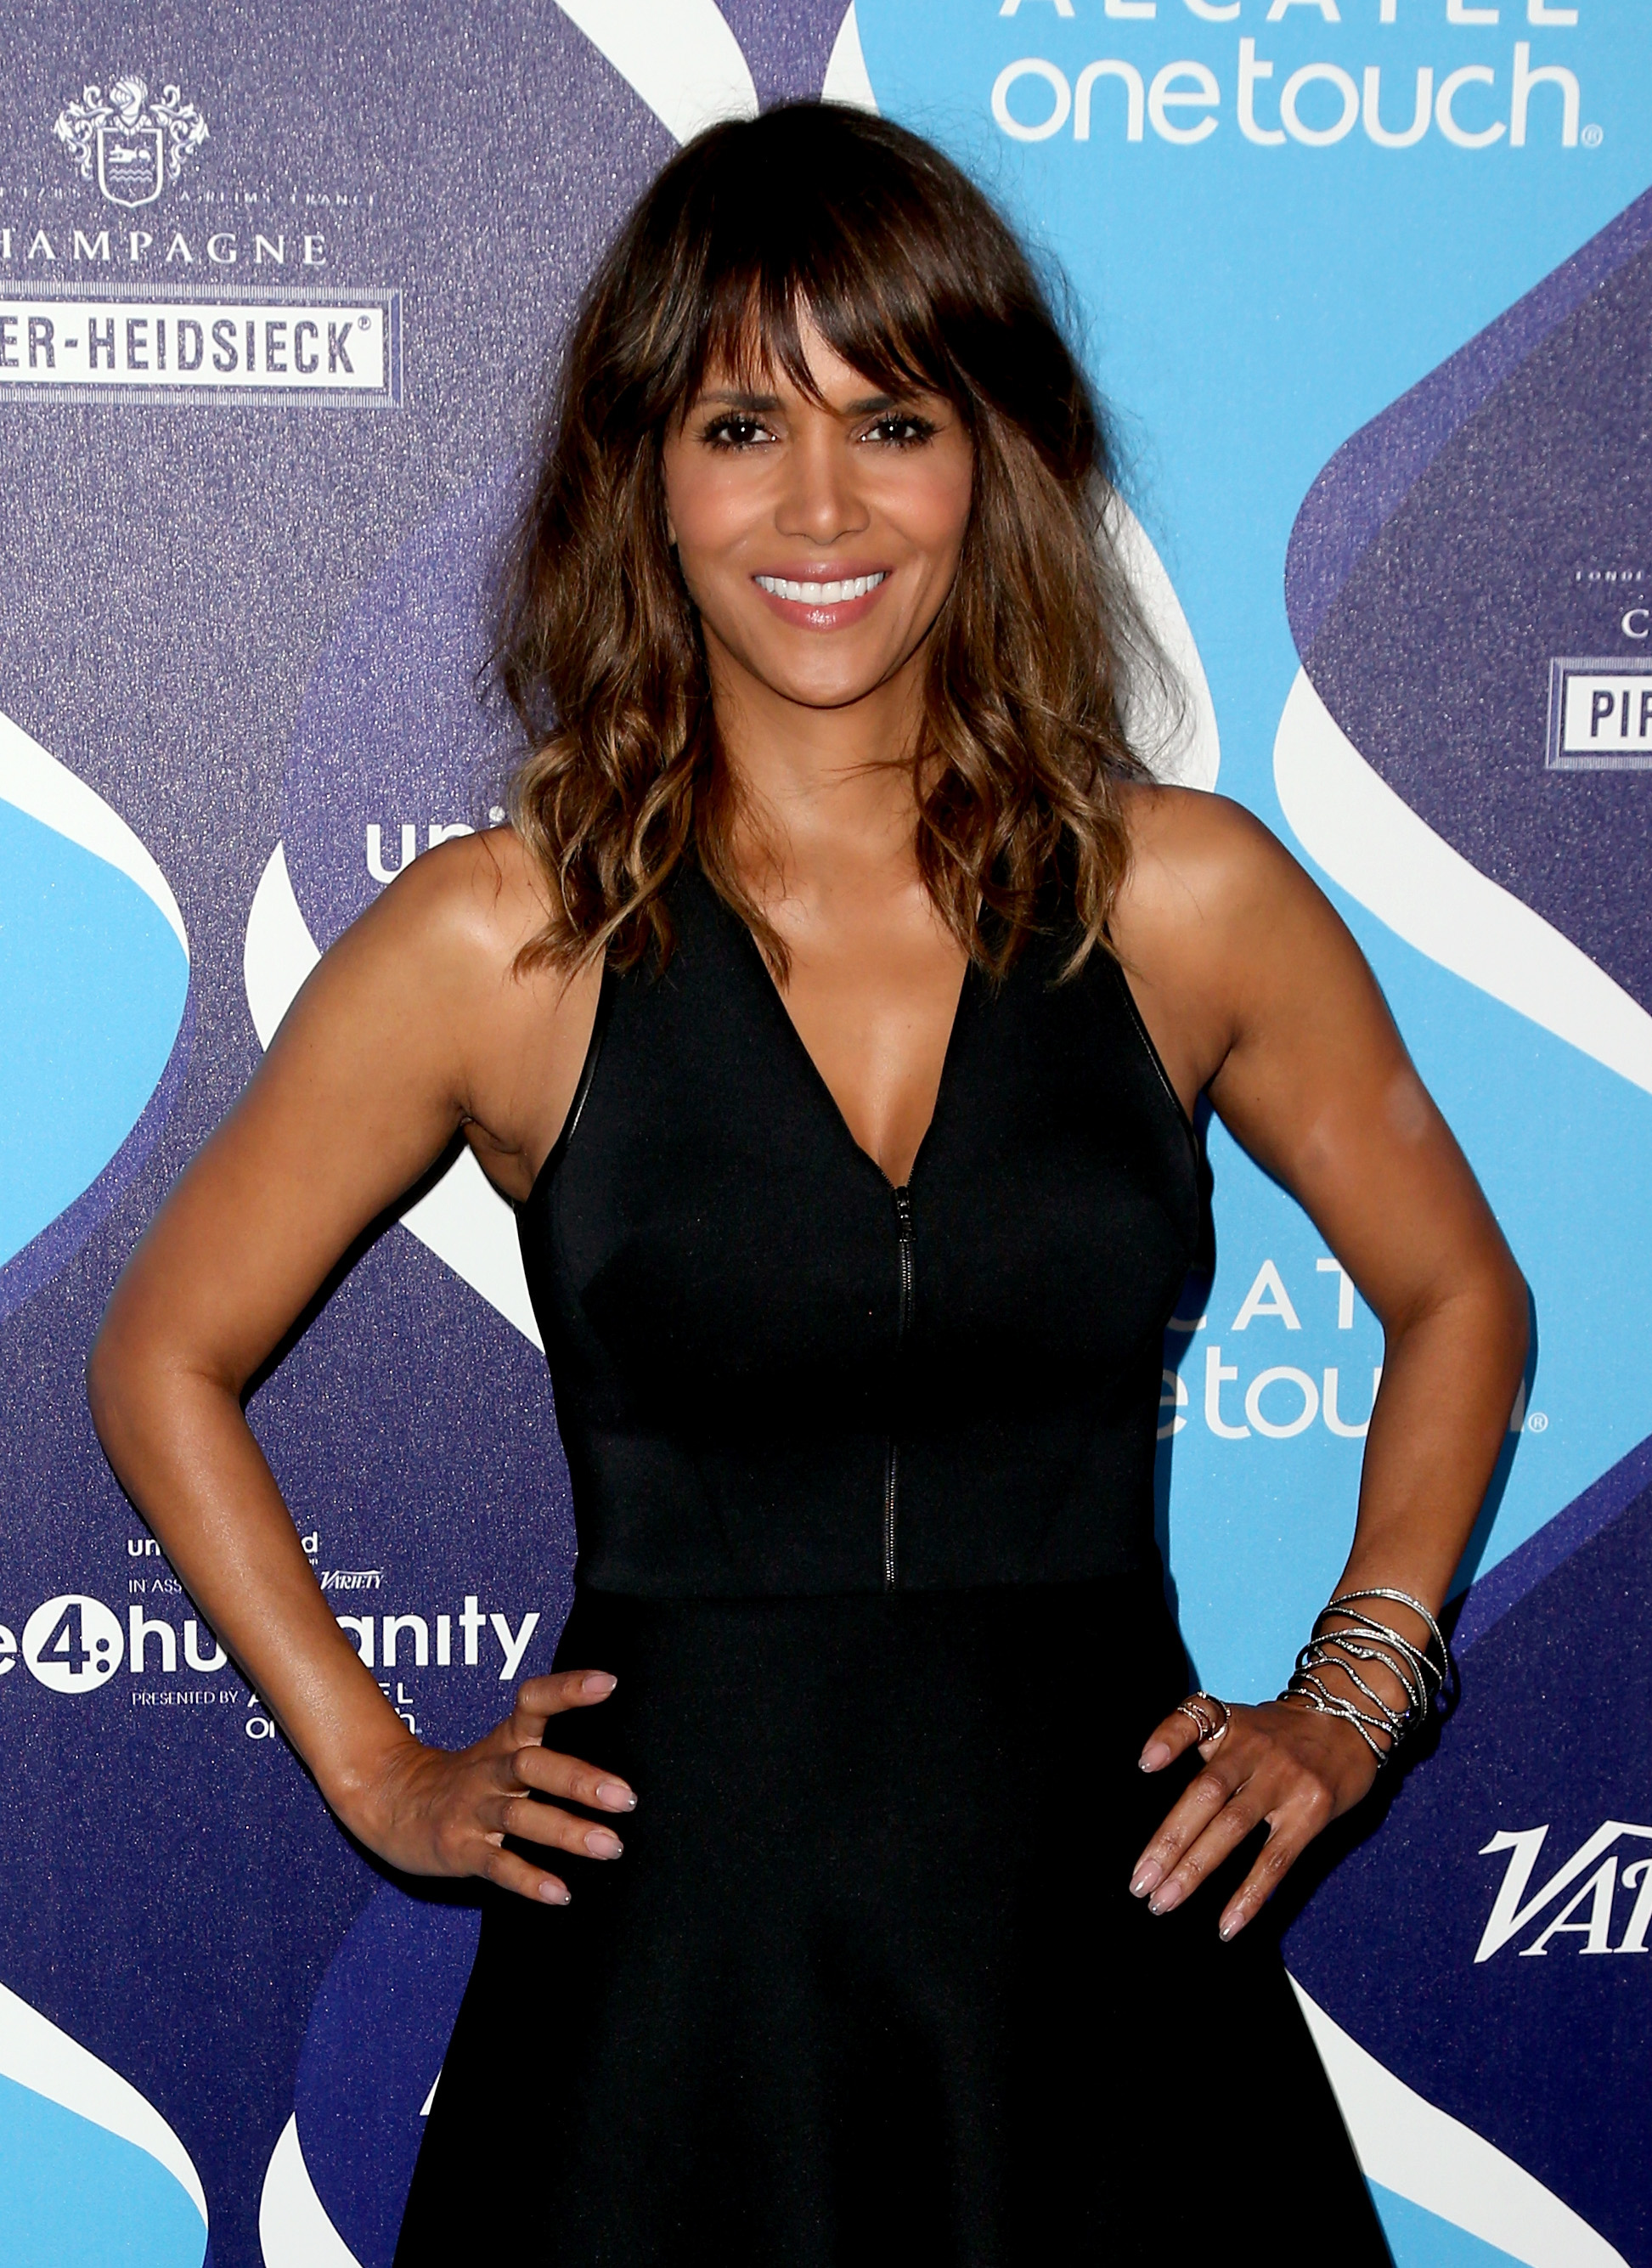 LOS ANGELES, CA - FEBRUARY 19:  Honoree Halle Berry attends the 2nd Annual unite4:humanity Presented By ALCATEL ONETOUCH at the Beverly Hilton Hotel on February 19, 2015 in Los Angeles, California.  (Photo by Frederick M. Brown/Getty Images for Variety)